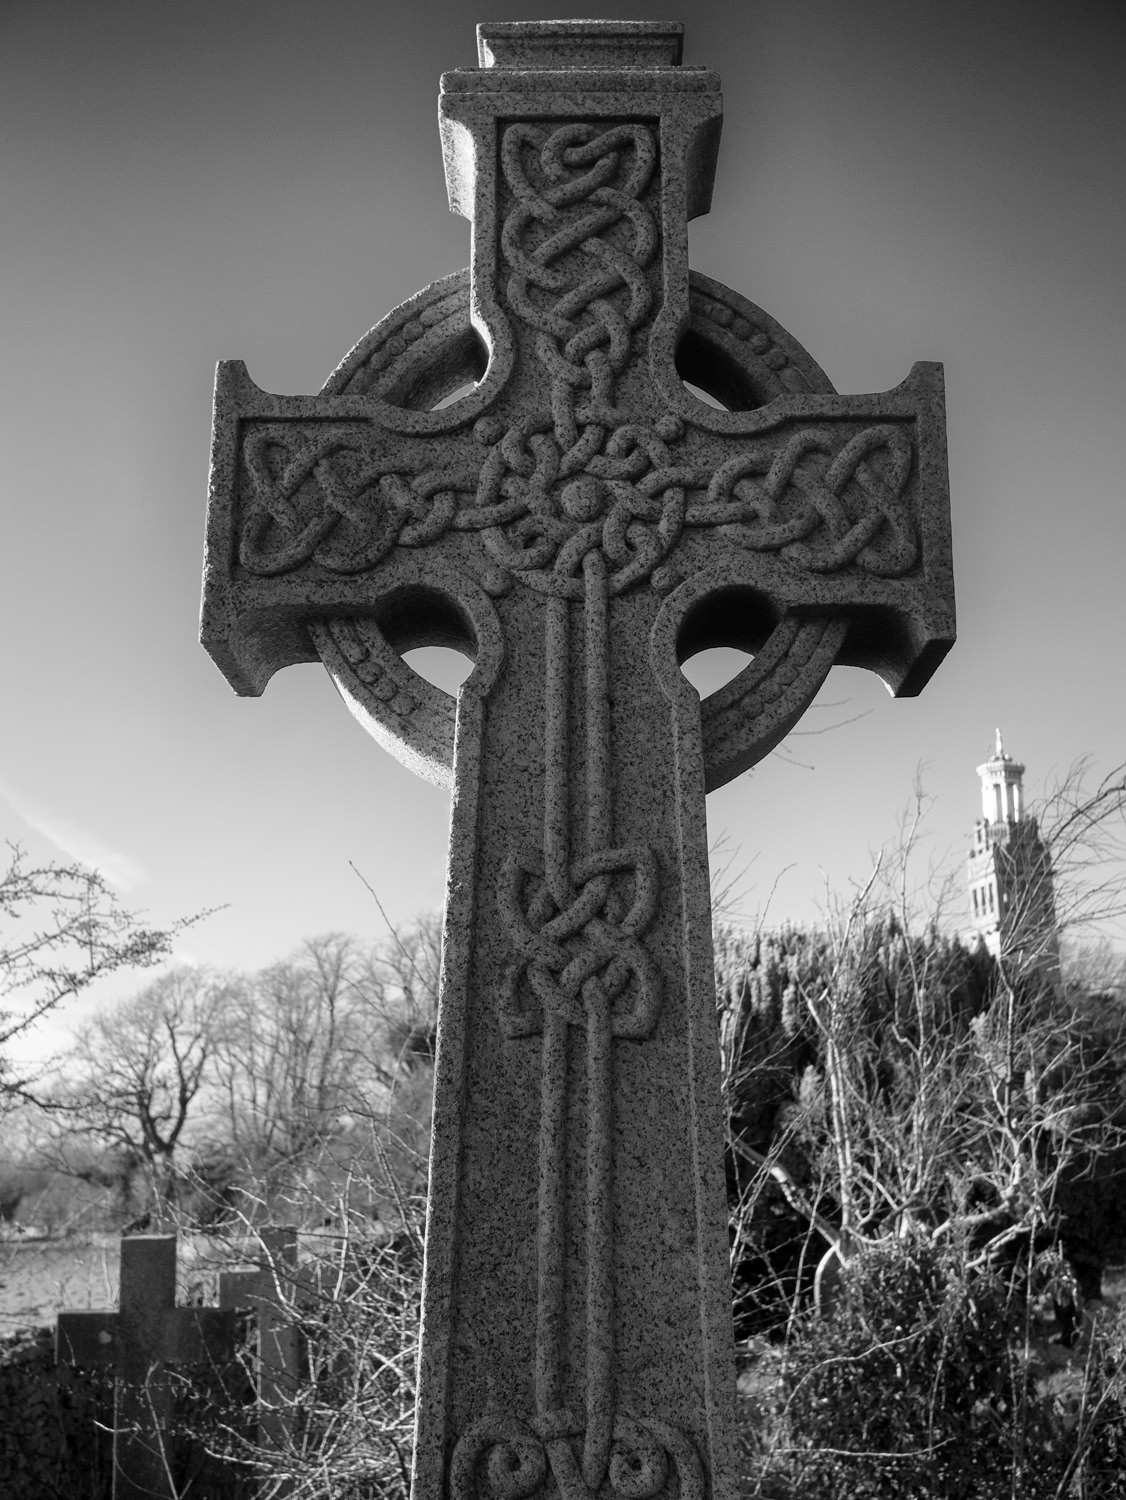 A closeup of the Celtic-style cross. It has a circle around the centre and decorative knots. Beckford's Tower is in the background.